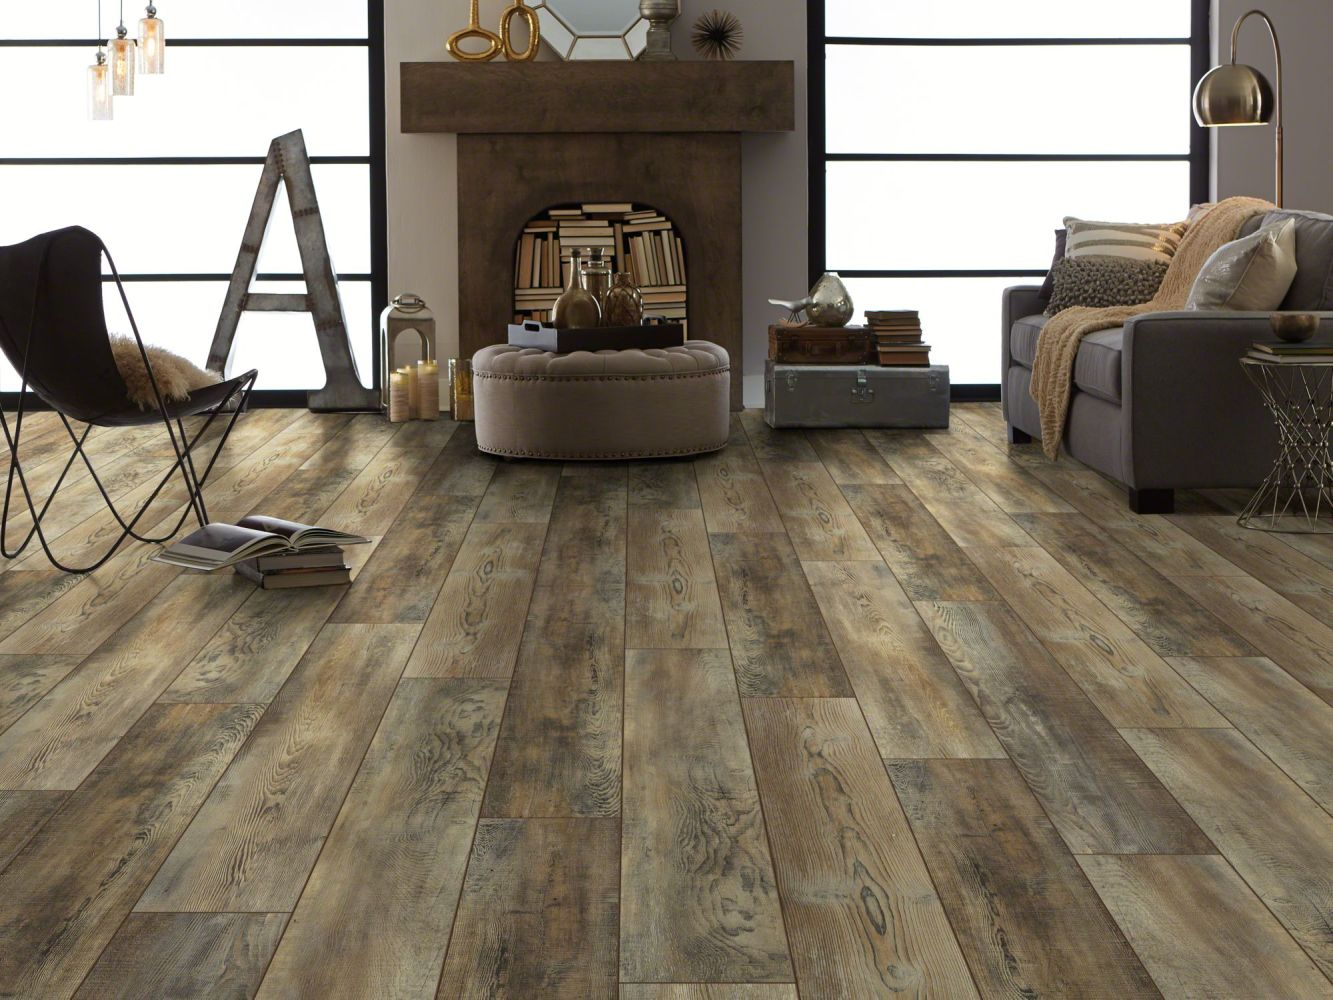 Shaw Floors Resilient Residential Pantheon HD Plus Saggio 00159_2001V